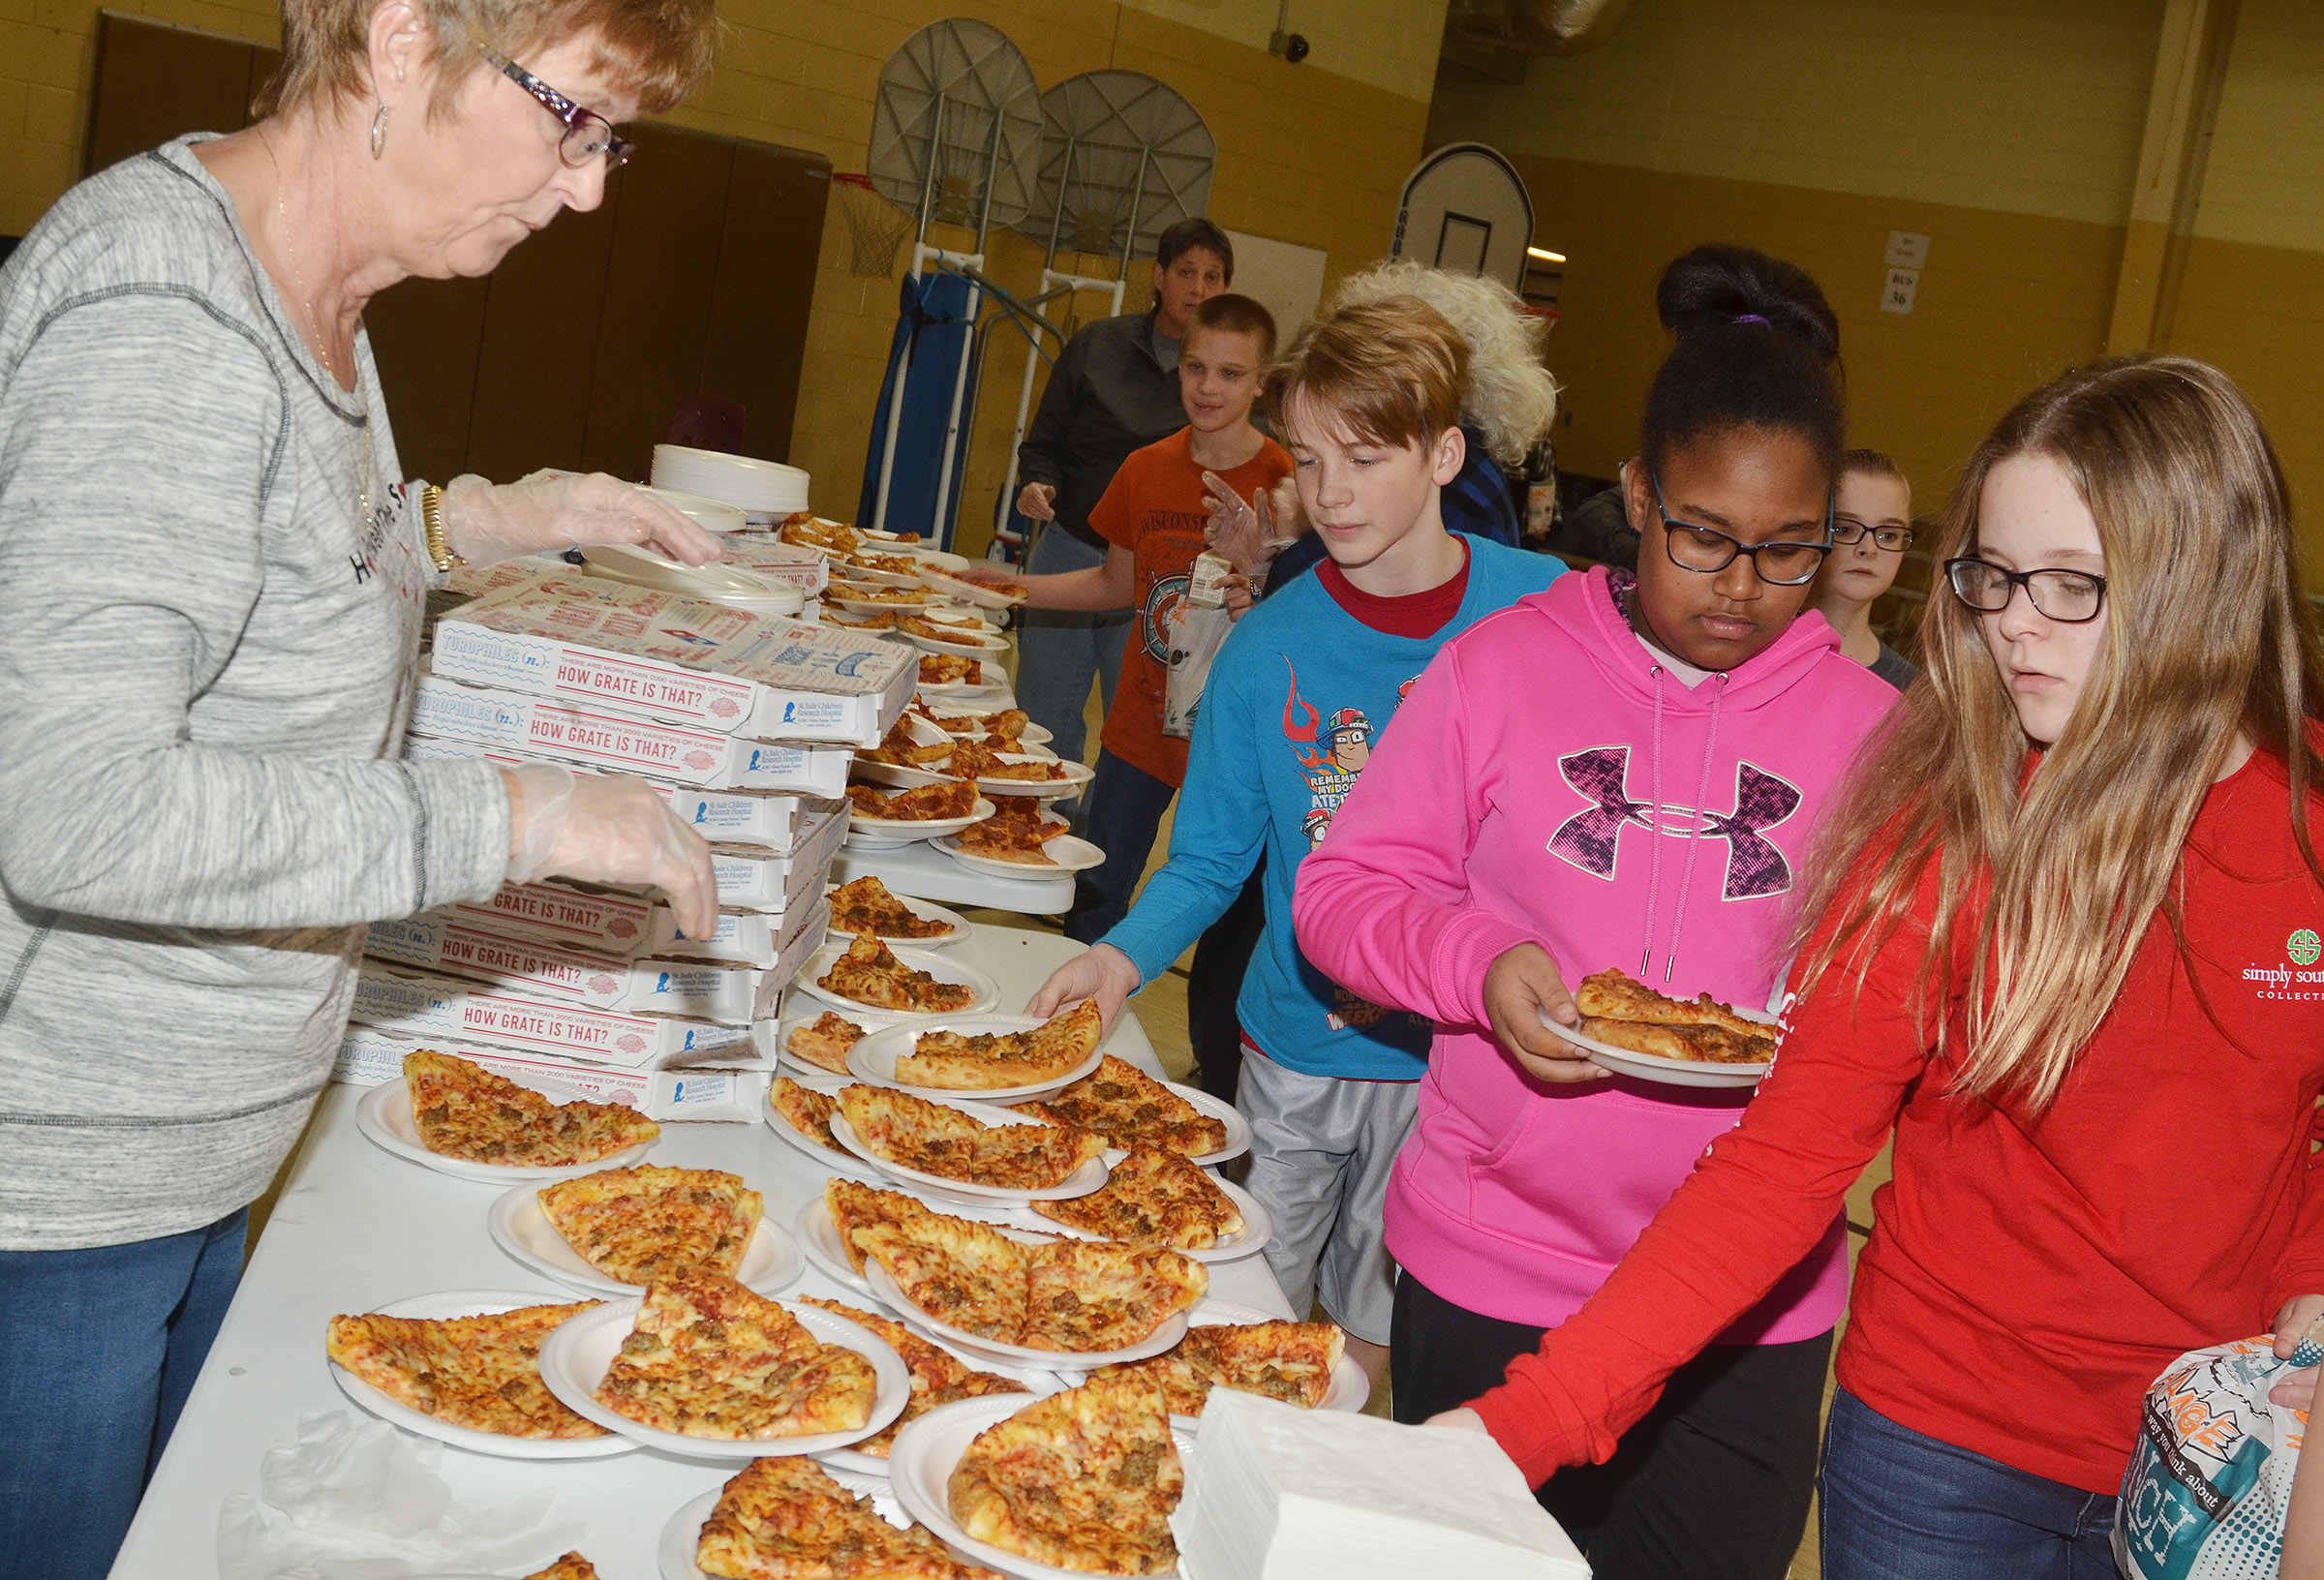 CMS assistant Carolyn Gaskins serves pizza.